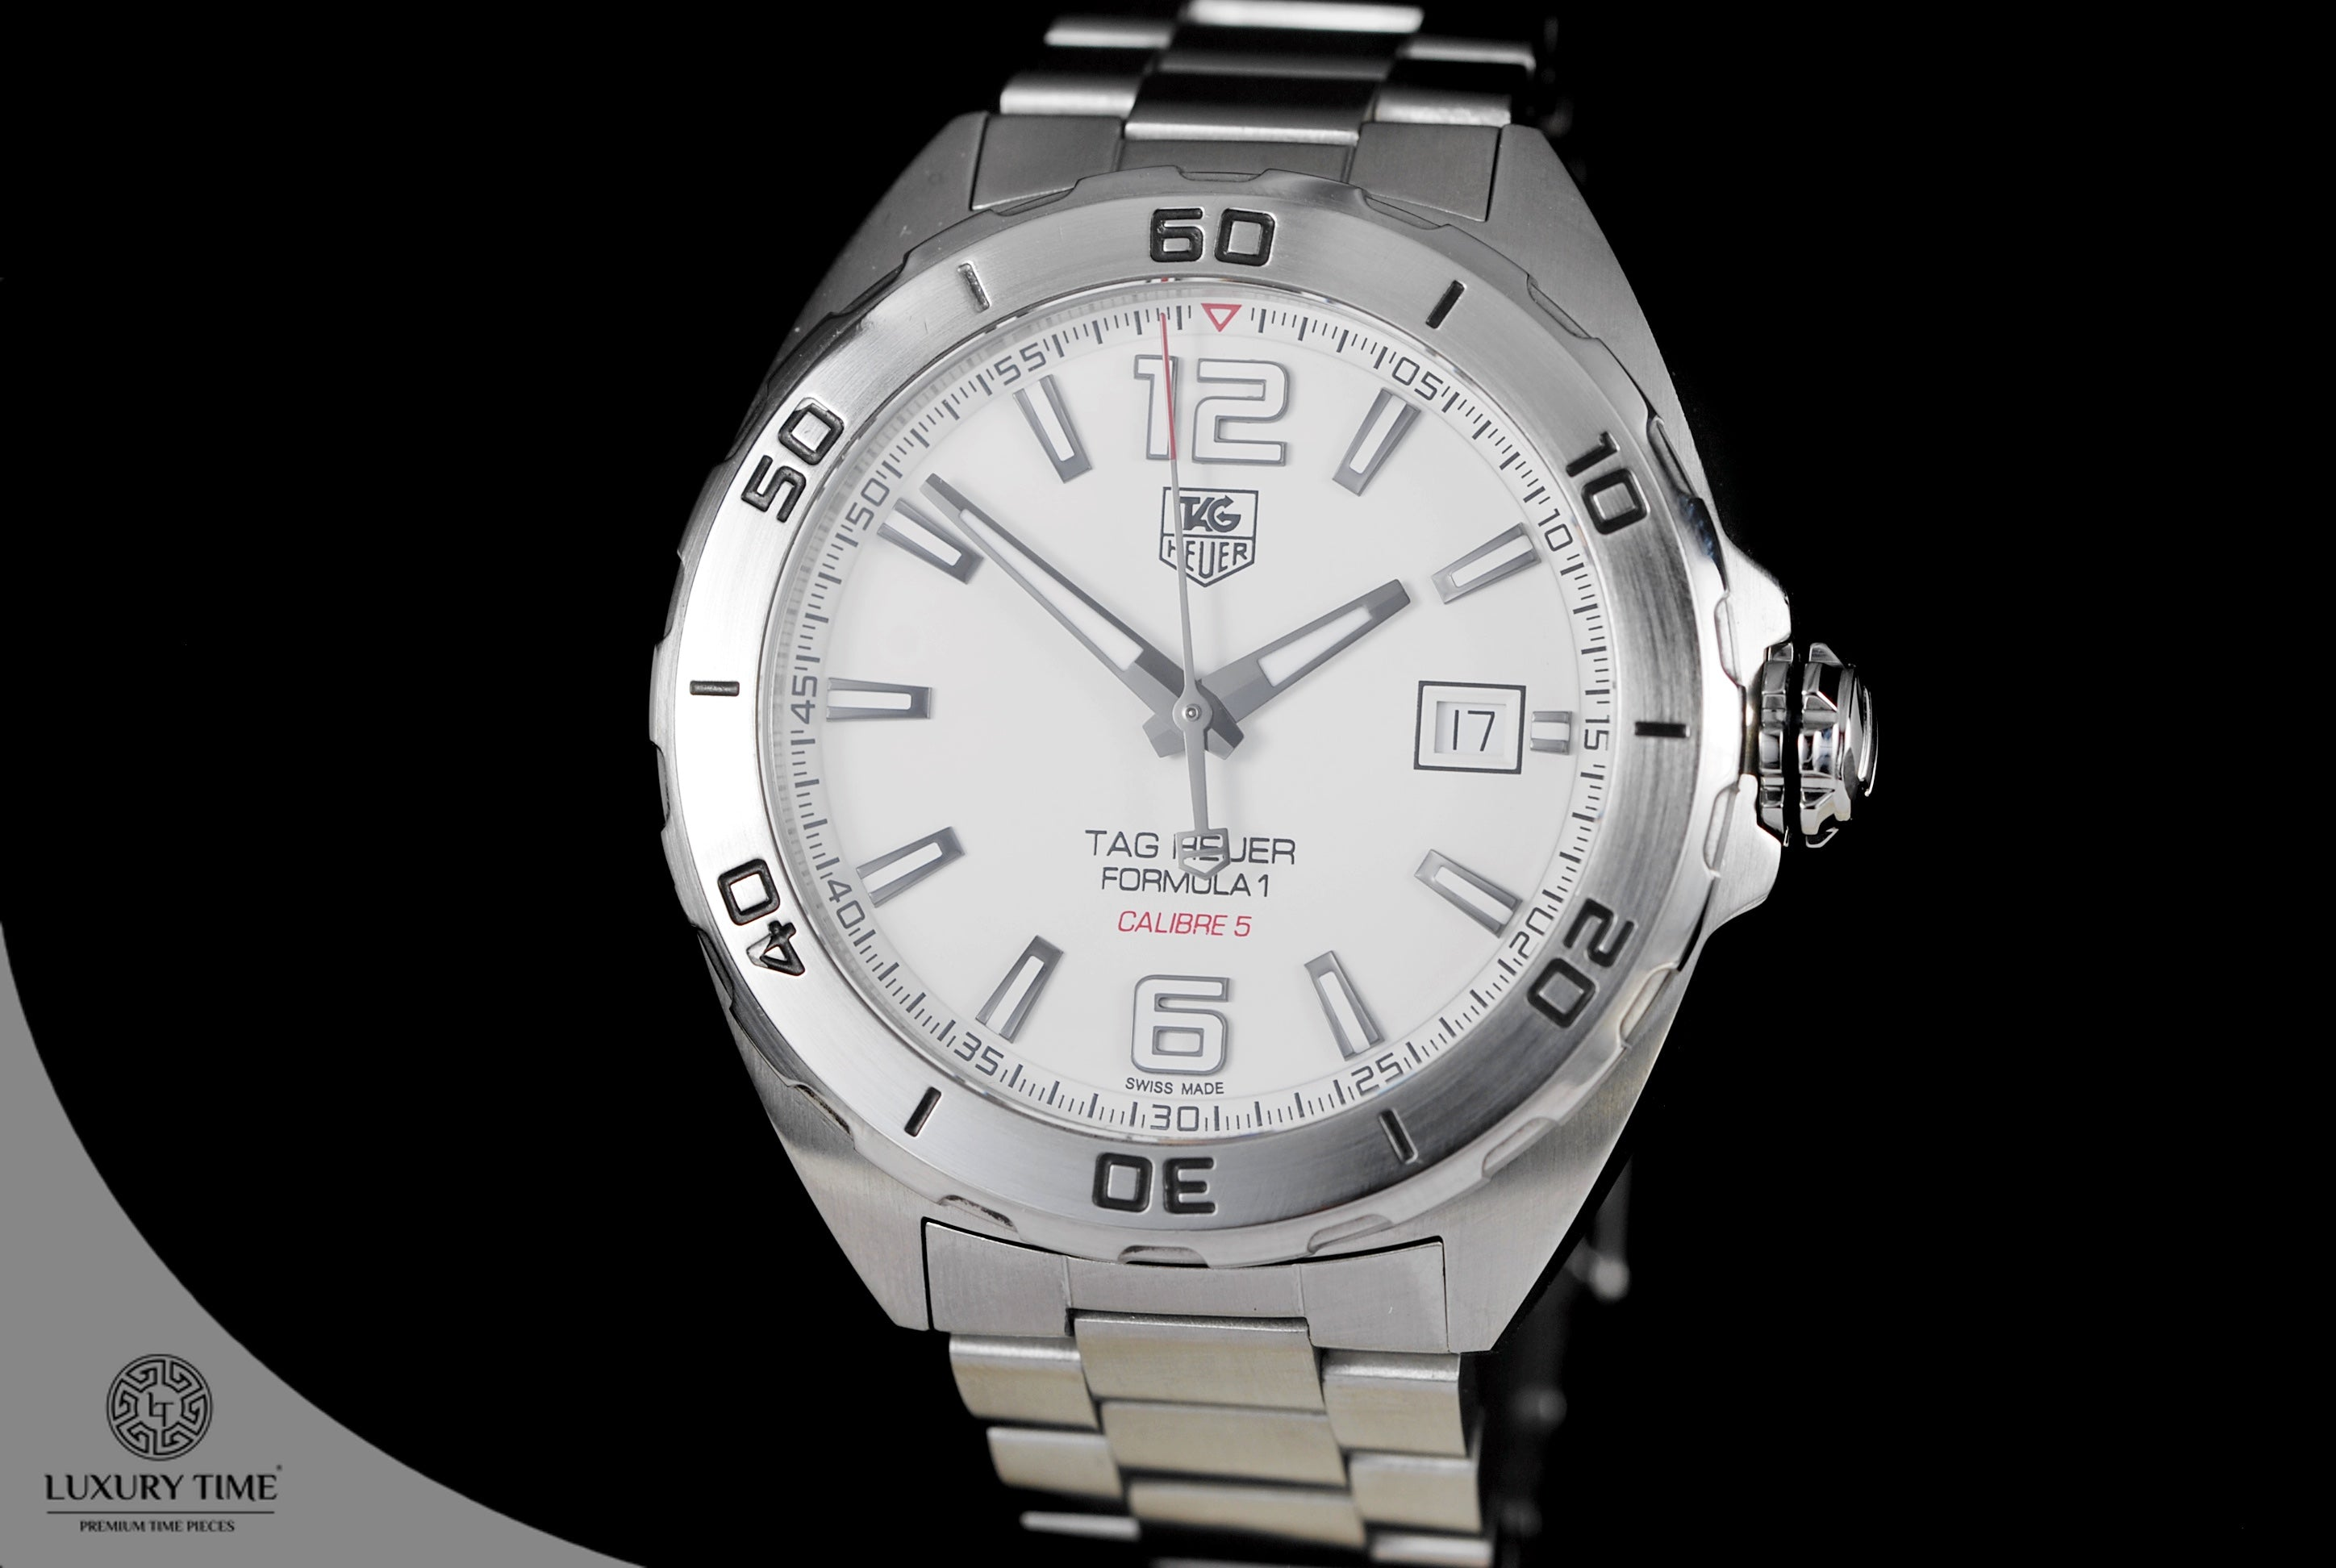 41f5c11e5aa Tag Heuer Formula 1 Automatic White Dial Men s Watch - WatchtimeSA